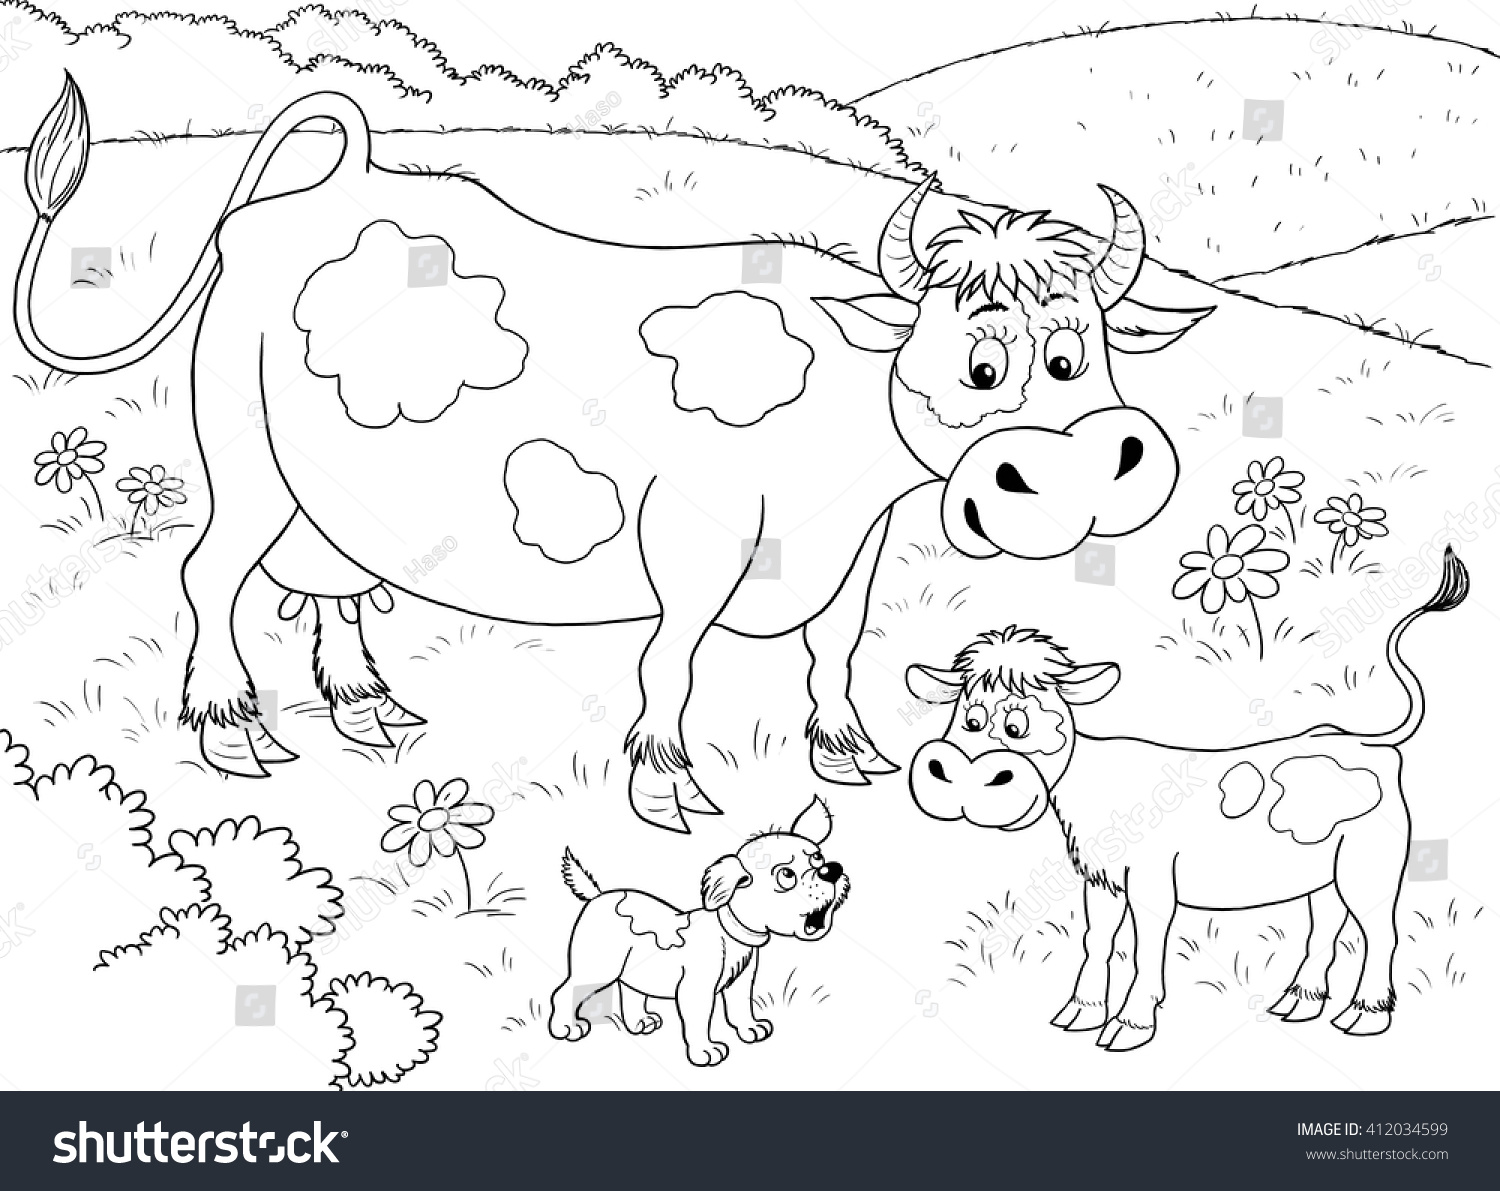 Cute Mother Cow And Her Baby Calf Illustration